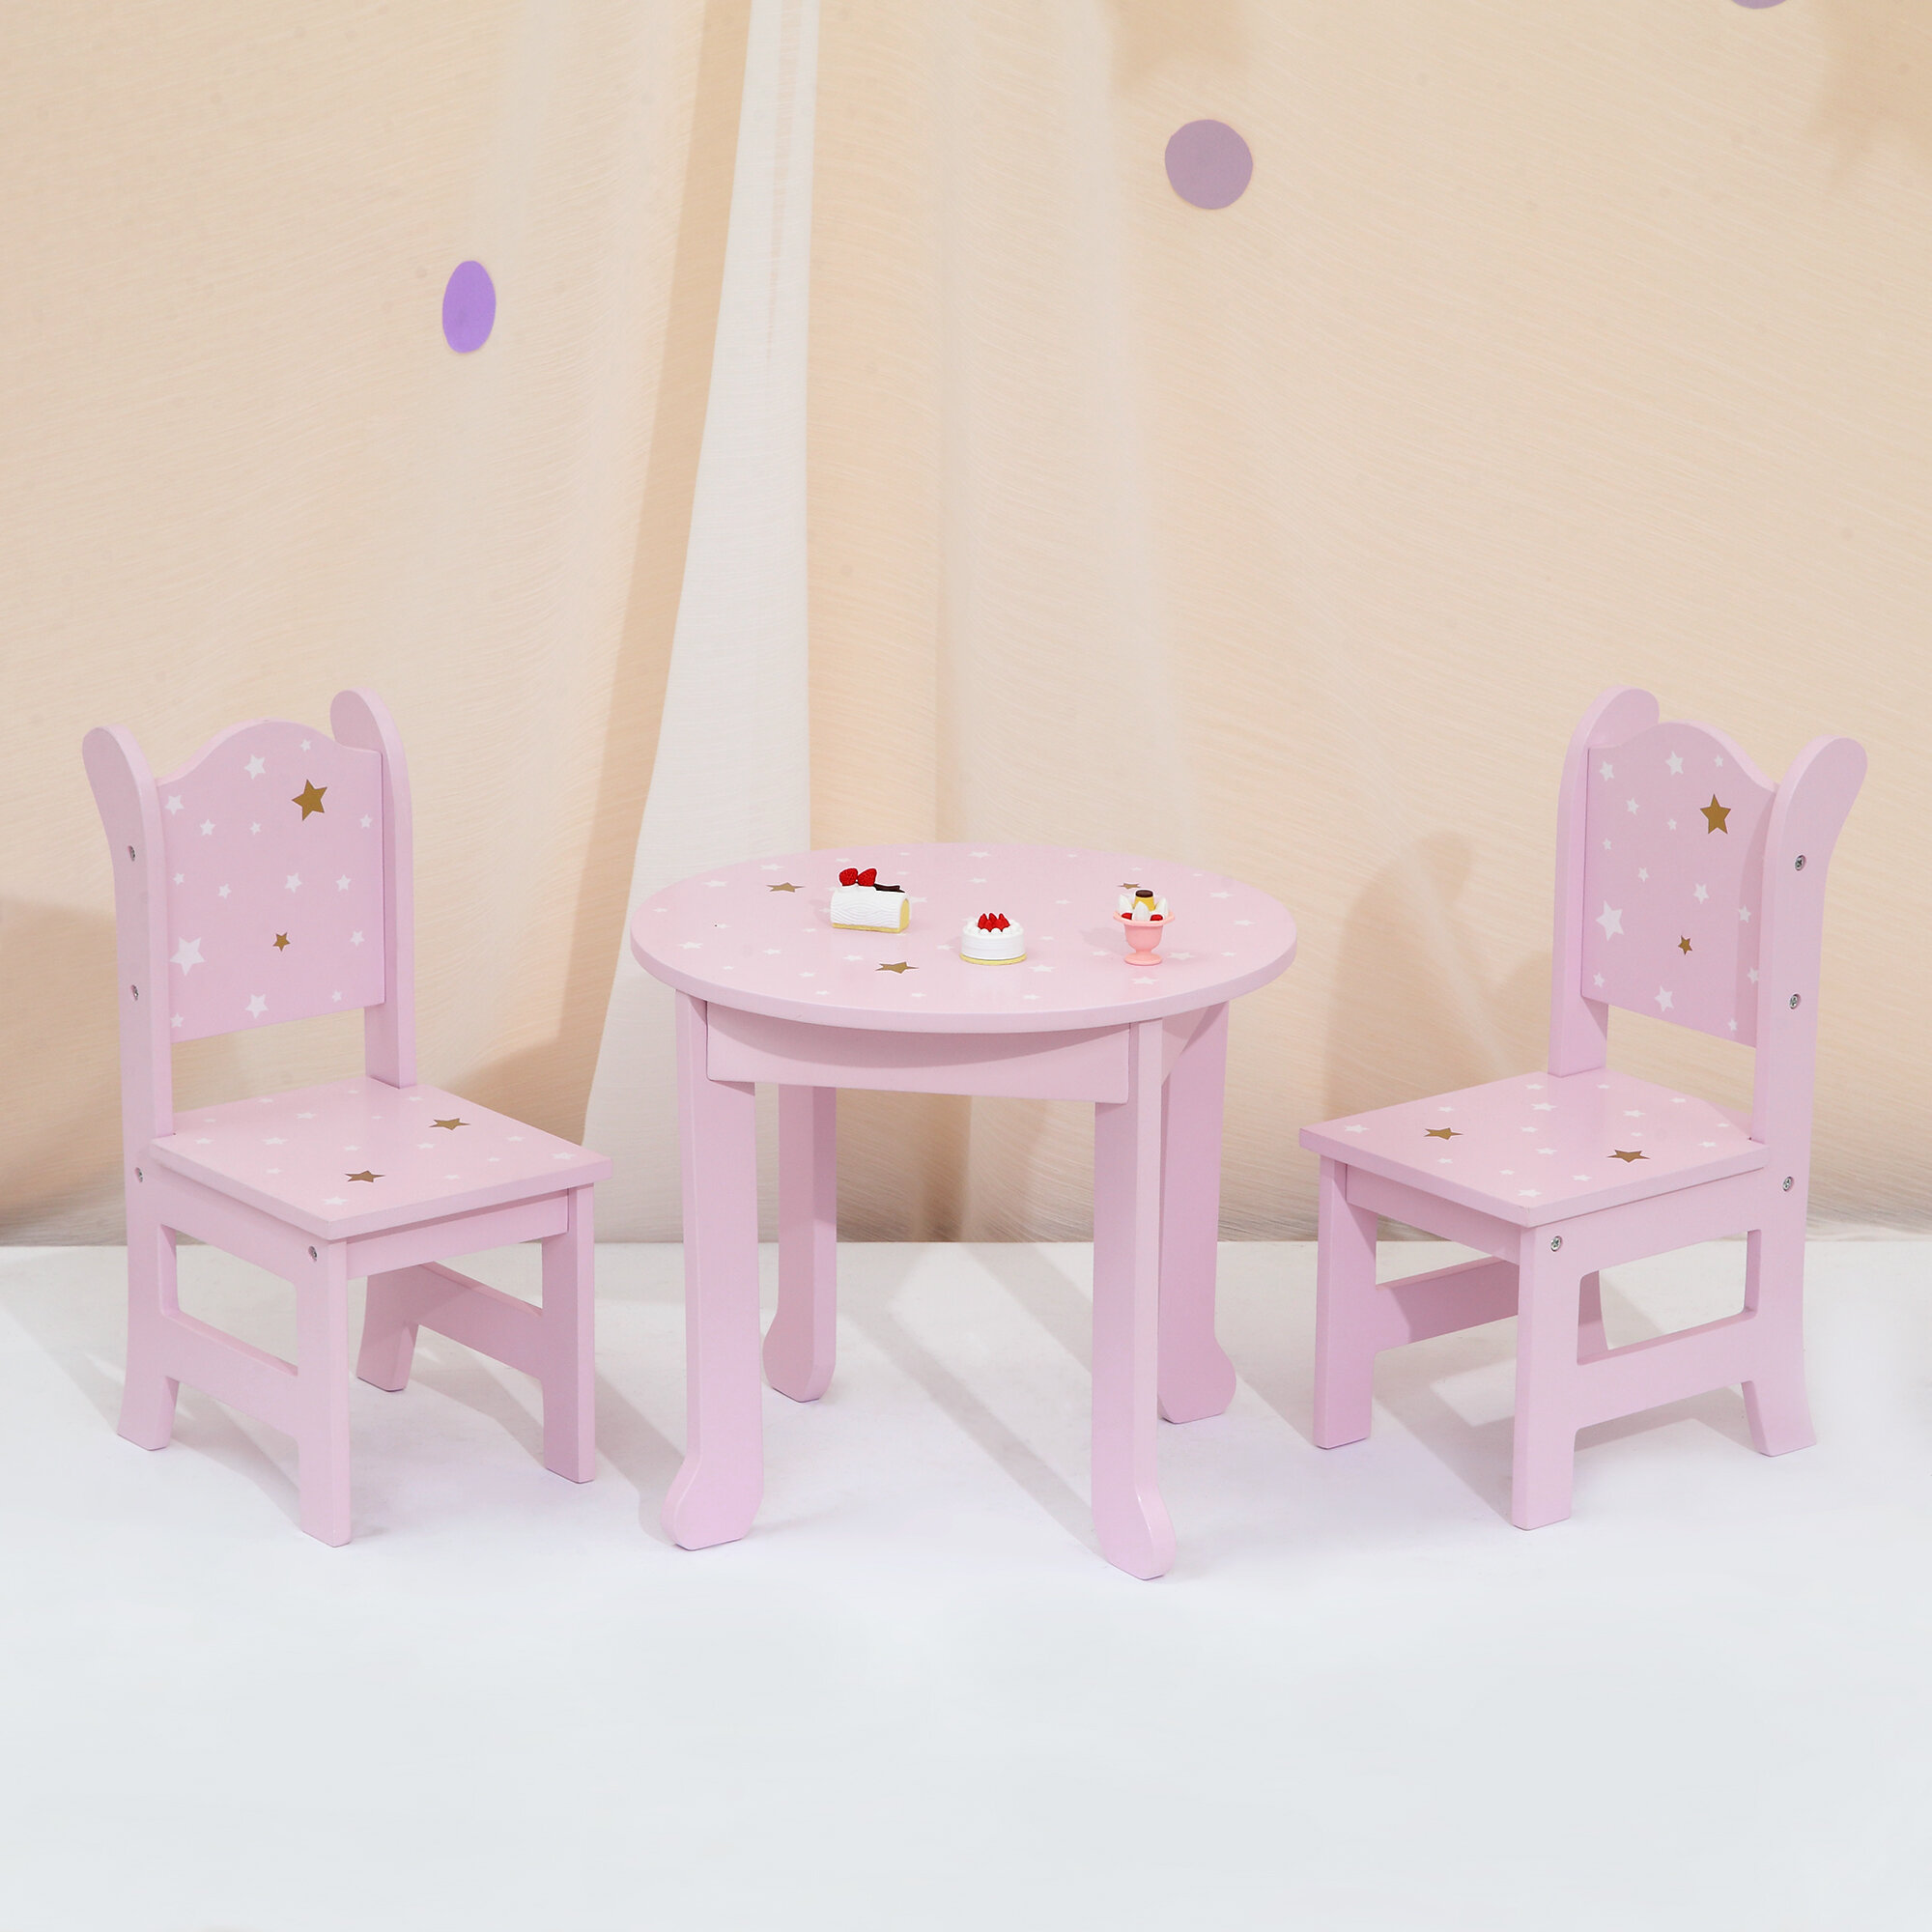 White Olivias Little World   Fits American Girl Princess 18 Doll Vanity Table and Chair Set with Rotatable Mirror Wooden 18 inch Doll Furniture